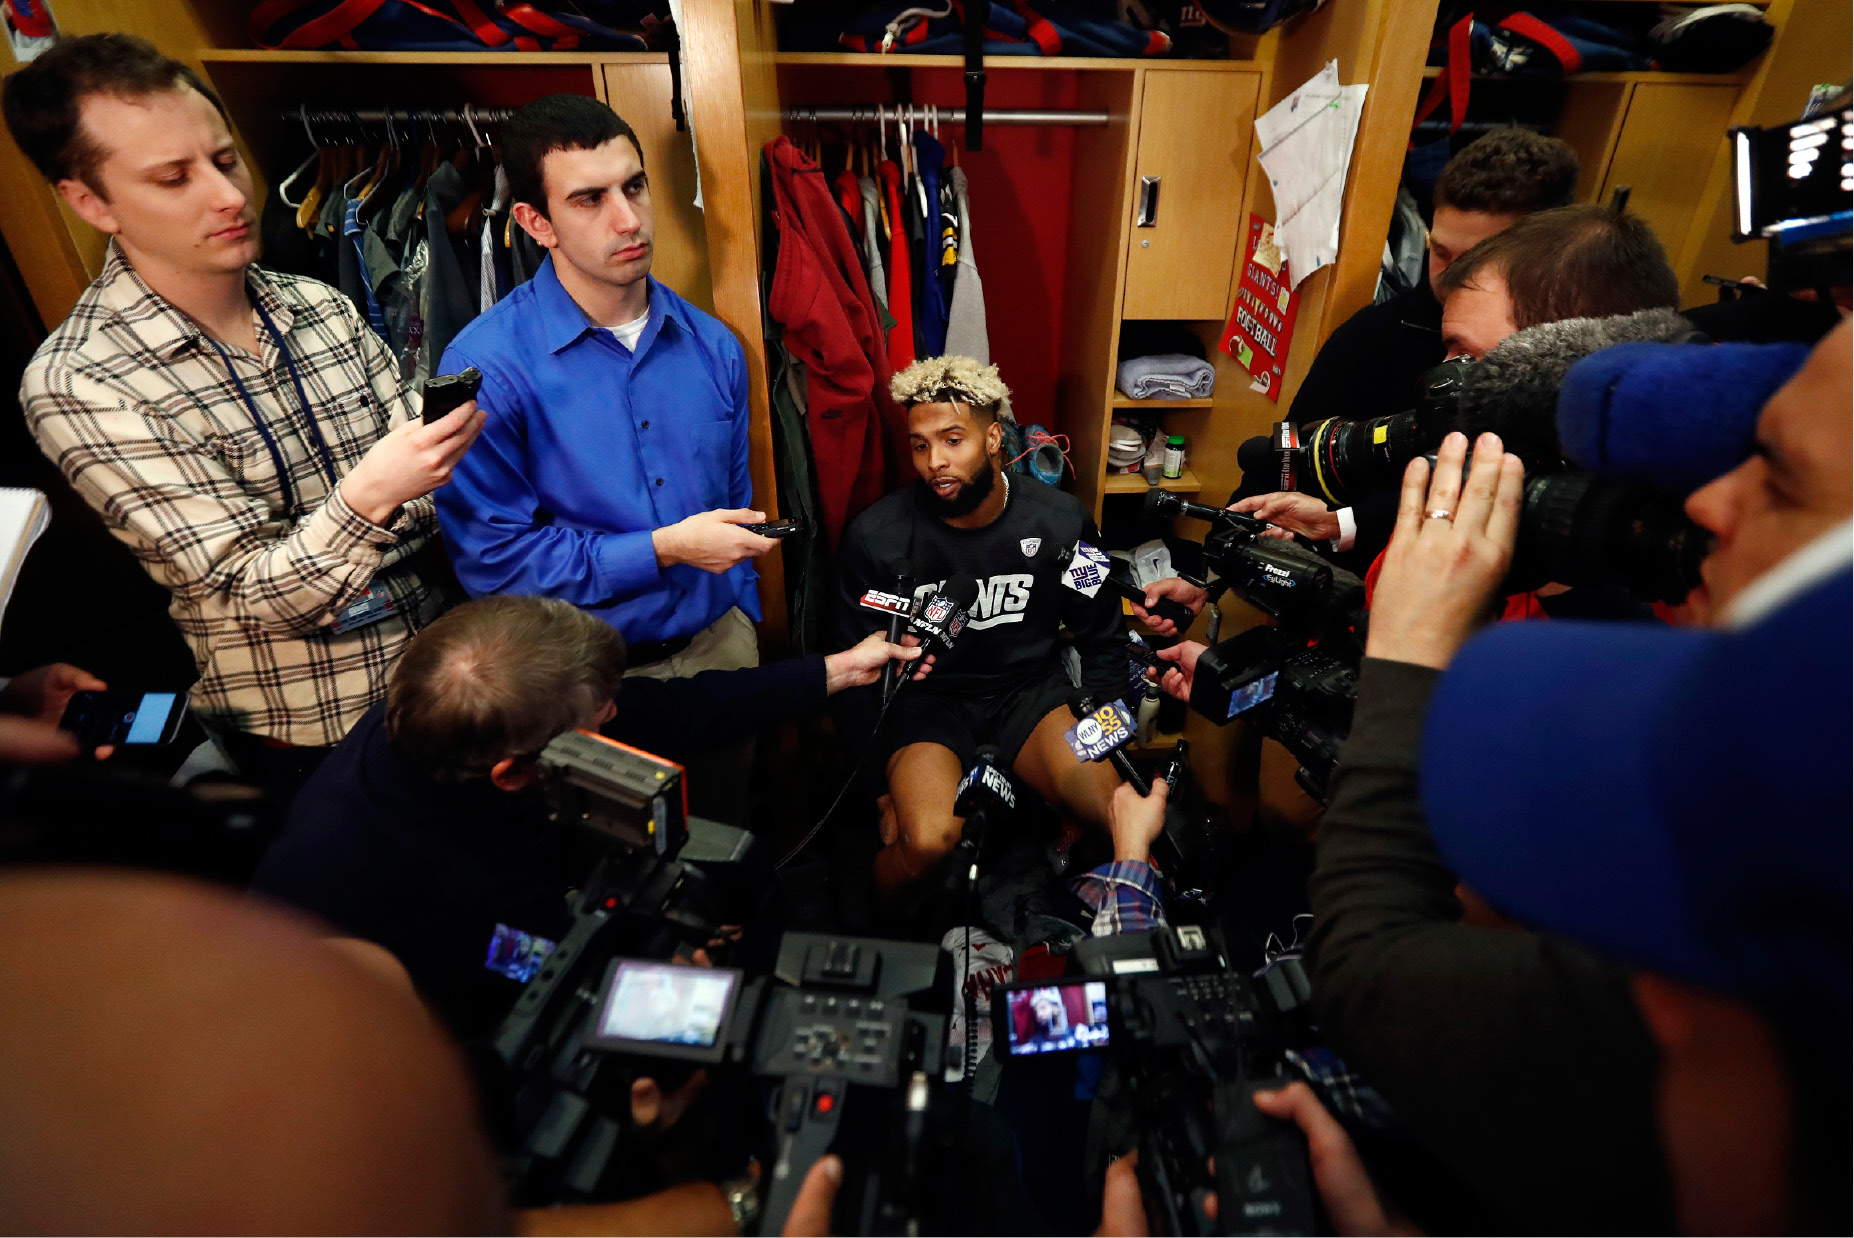 New York Giants wide receiver Odell Beckham talks to reporters during NFL football practice, Wednesday, Dec. 7, 2016, in East Rutherford, N.J. The Giants will play the Dallas Cowboys, who are 11-1, on Sunday. (AP Photo/Julio Cortez)